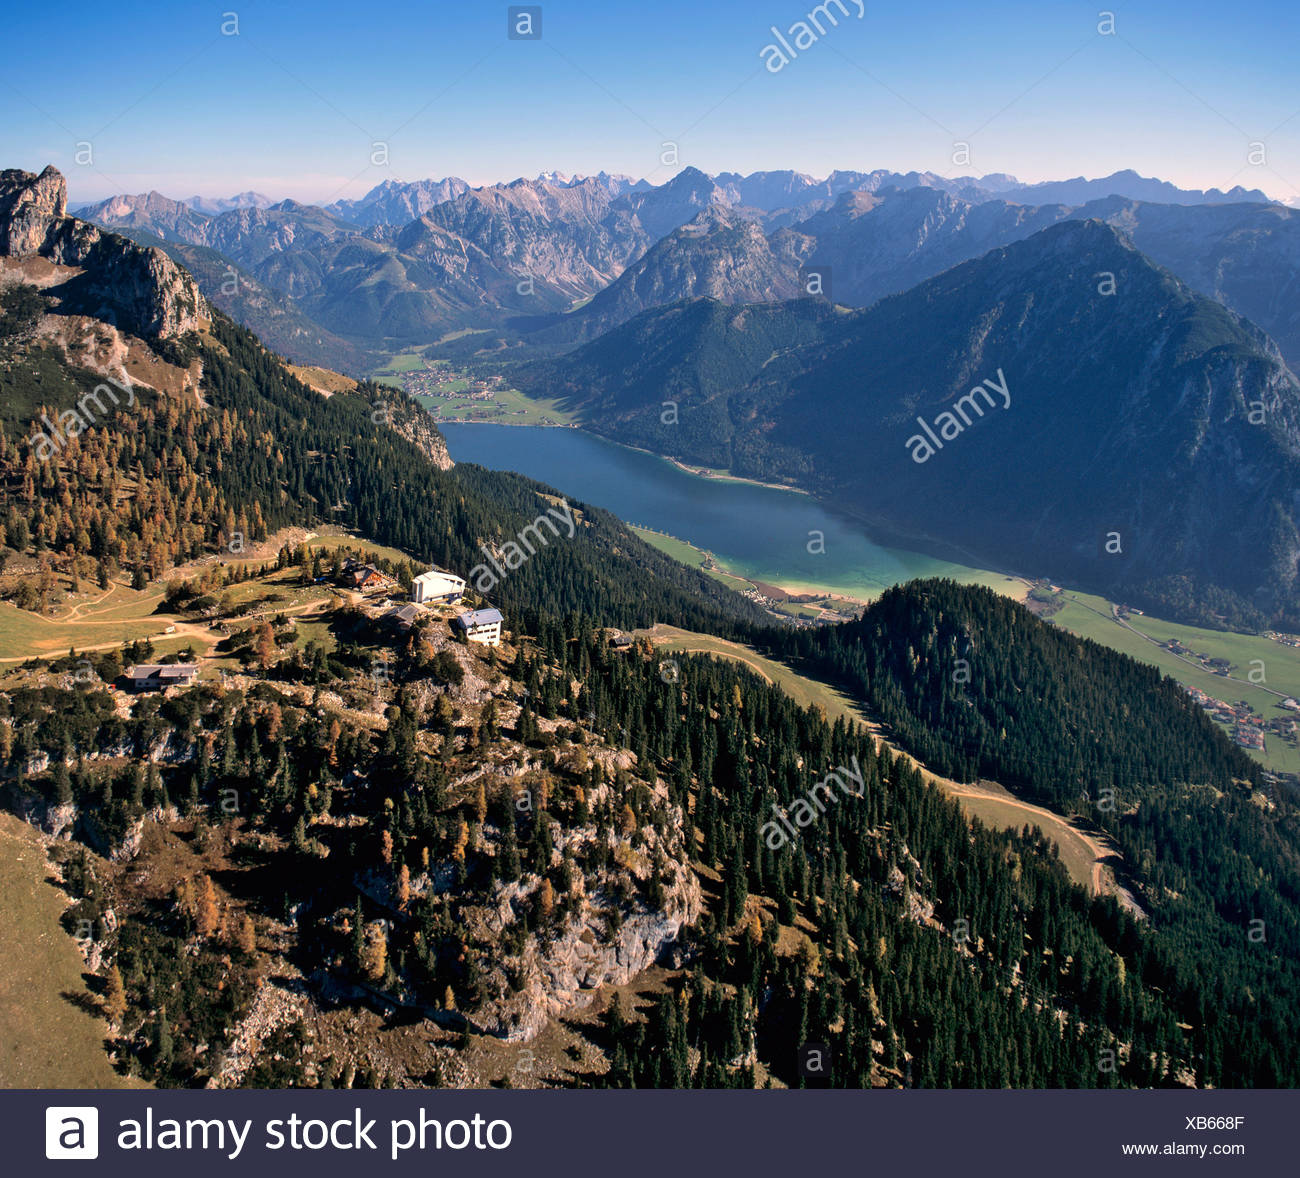 View on Seefeld, in the middle Mieminger Kette with Hohe Munde, on the right Wettersteingebirge, Tyrol, Austria Stock Photo